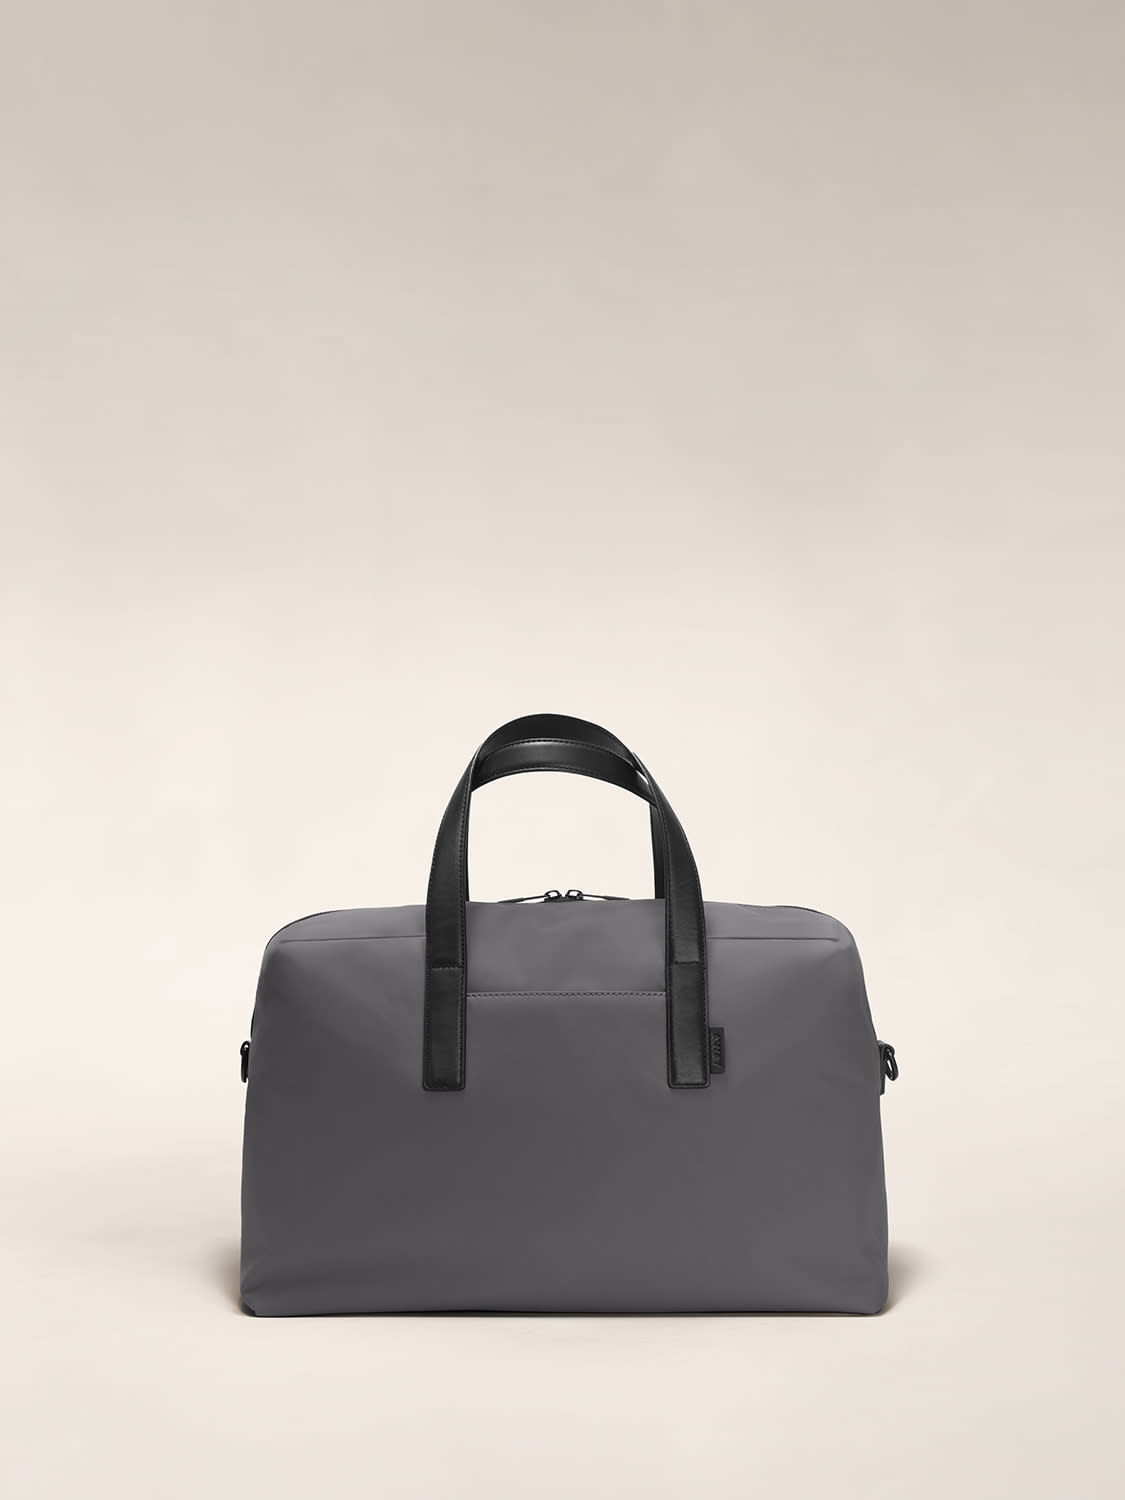 The Everywhere Bag in Asphalt nylon